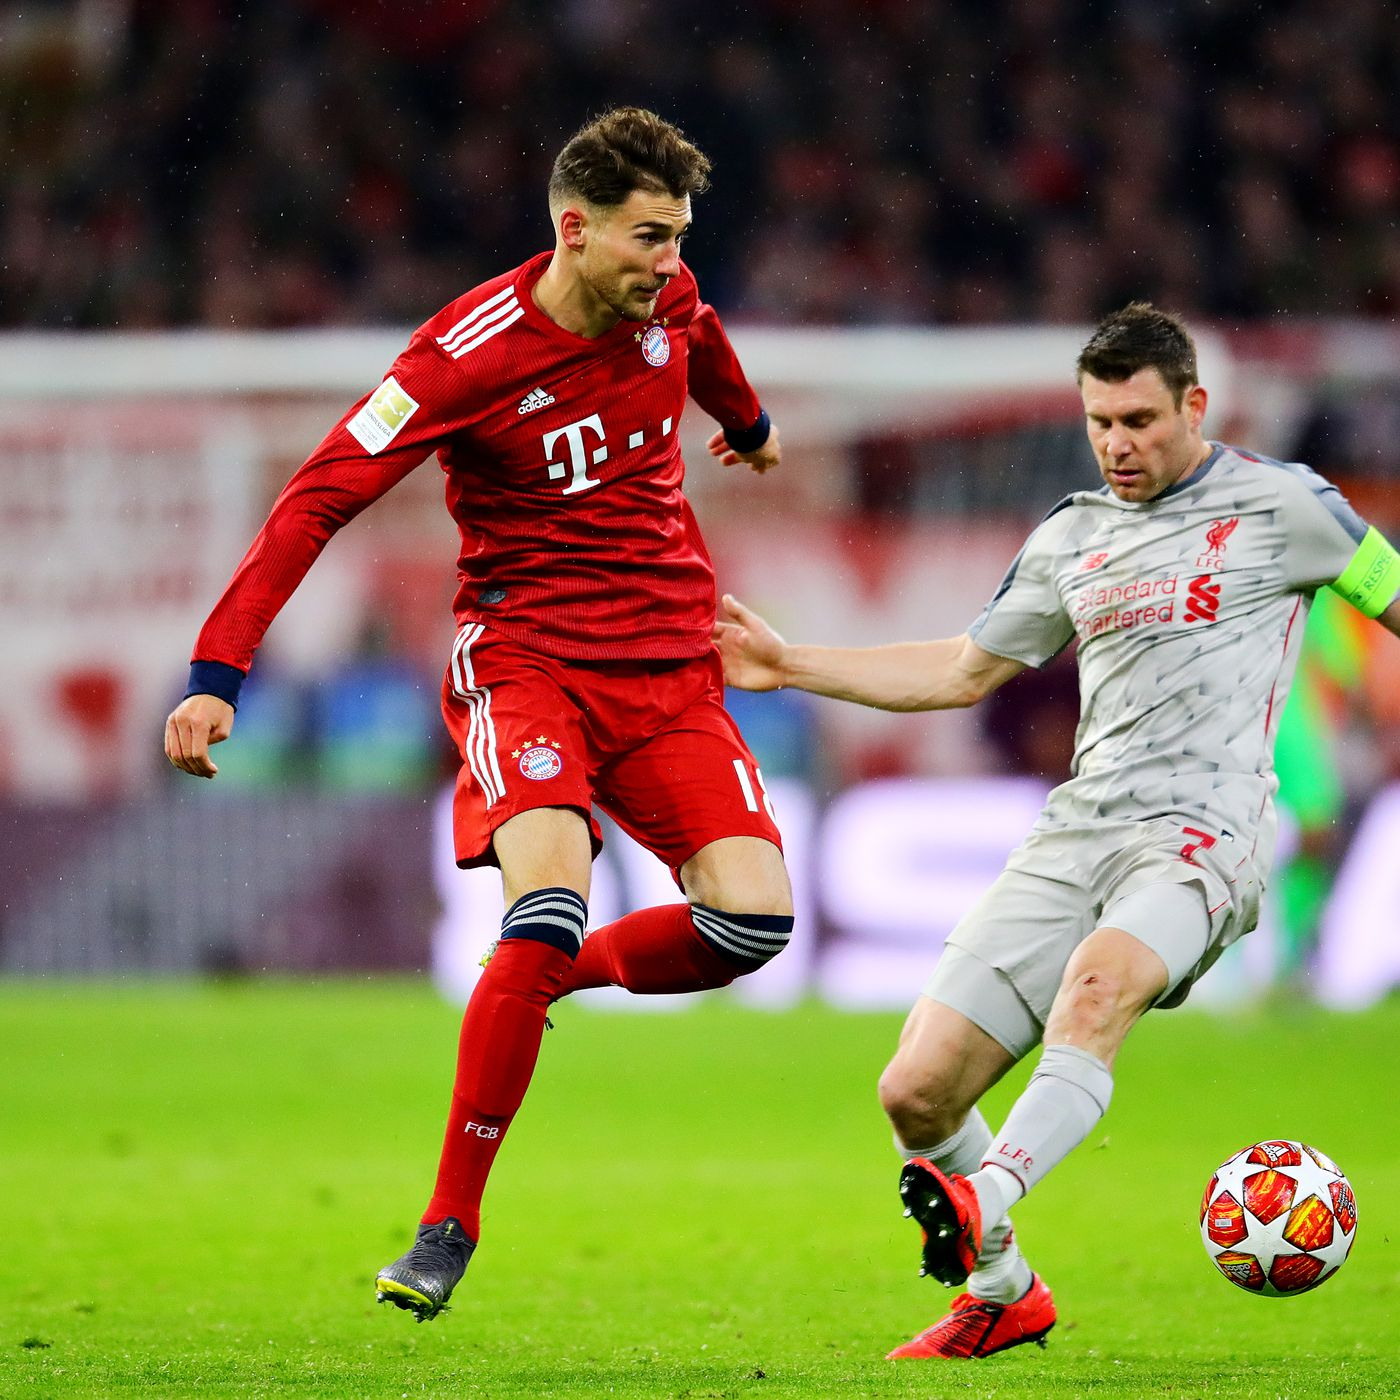 7c2550b61a973 UEFA investigating Bayern Munich and Leon Goretzka for wearing a Bundesliga  jersey in loss to Liverpool - Bavarian Football Works